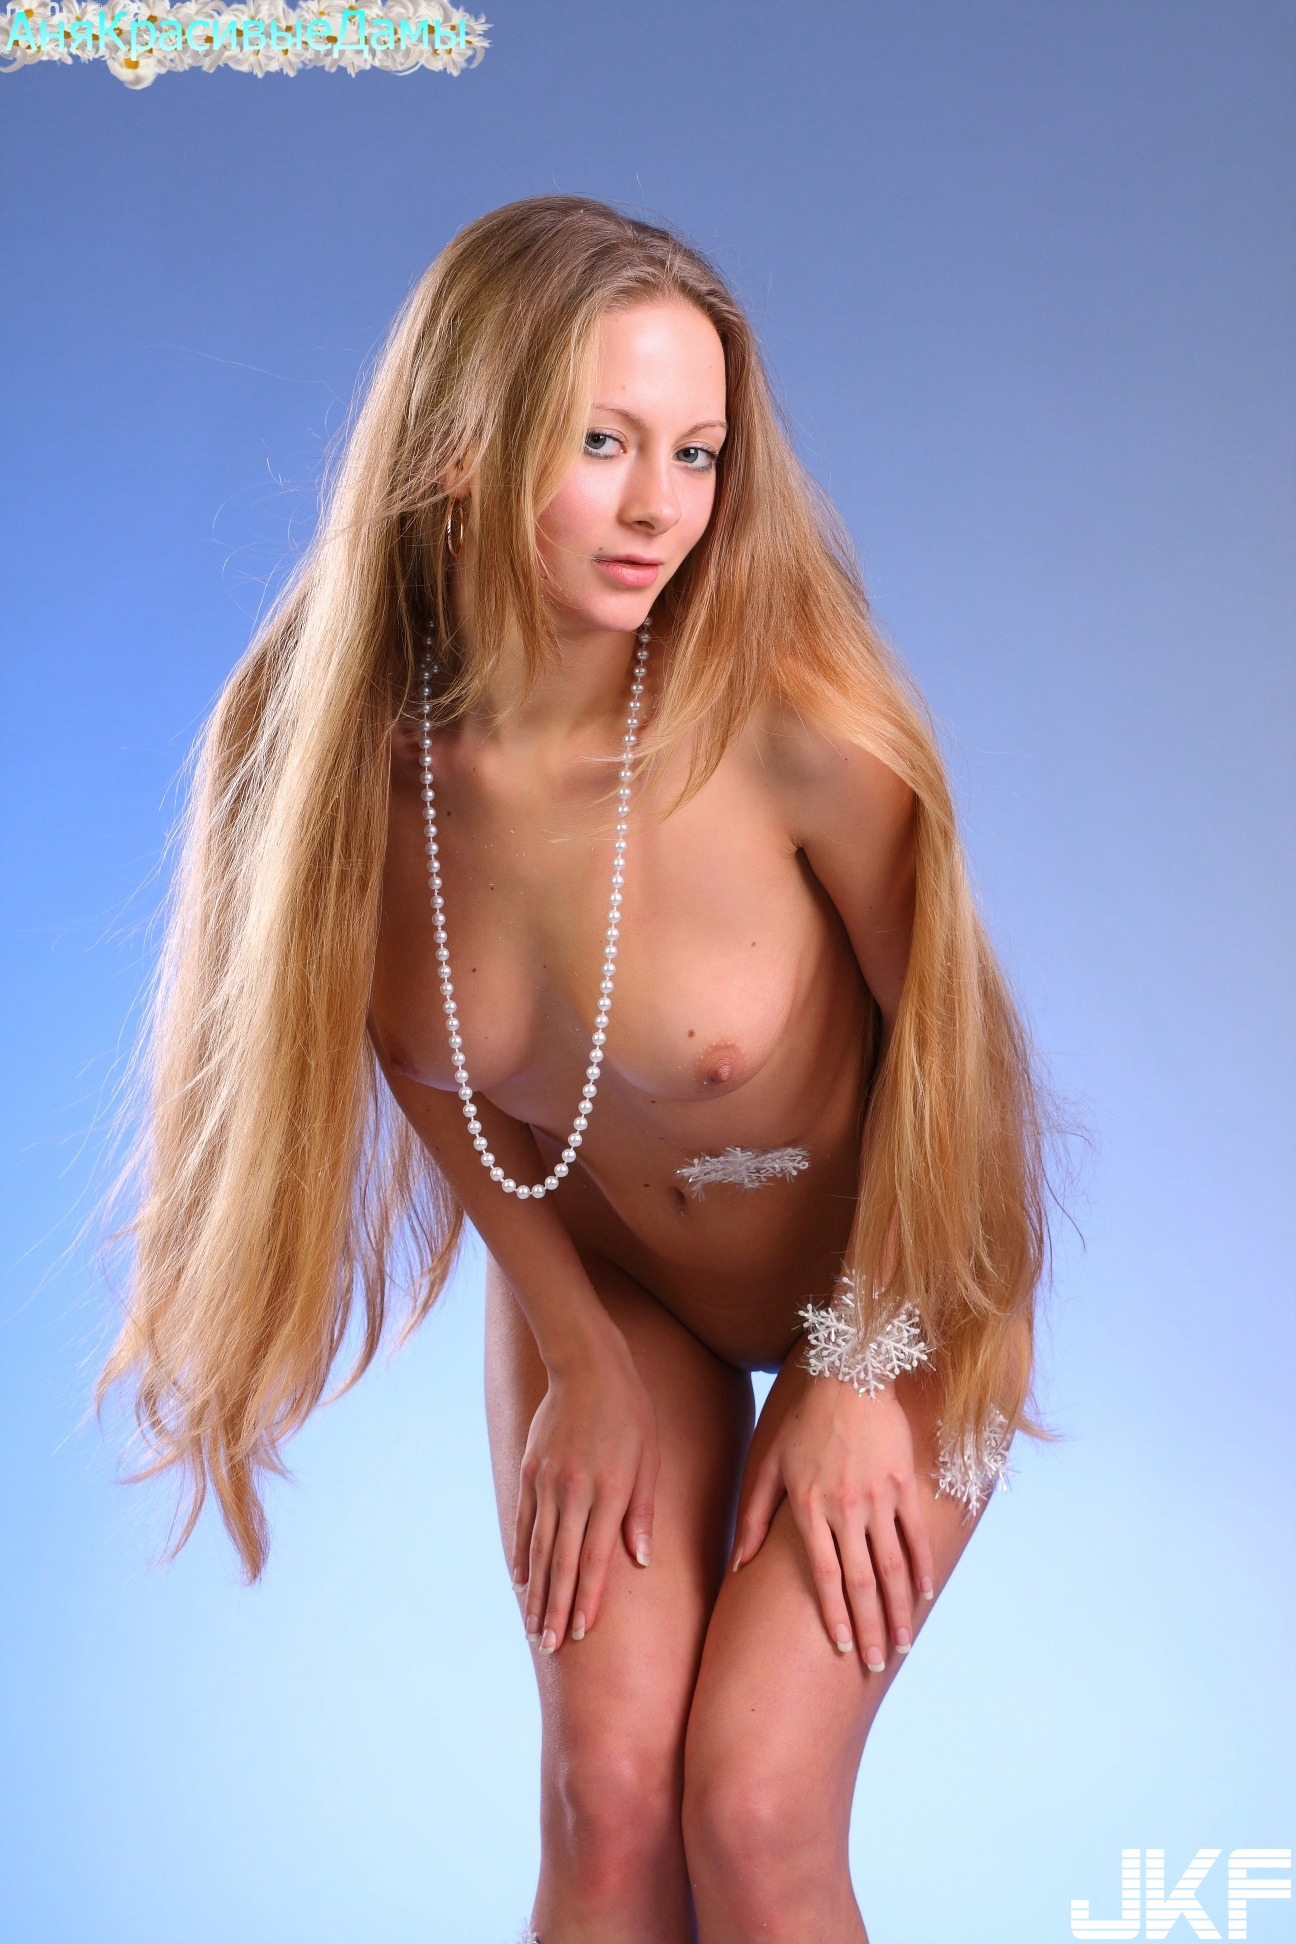 Shaved-Frances-A-with-Plump-Pussy-23.jpg